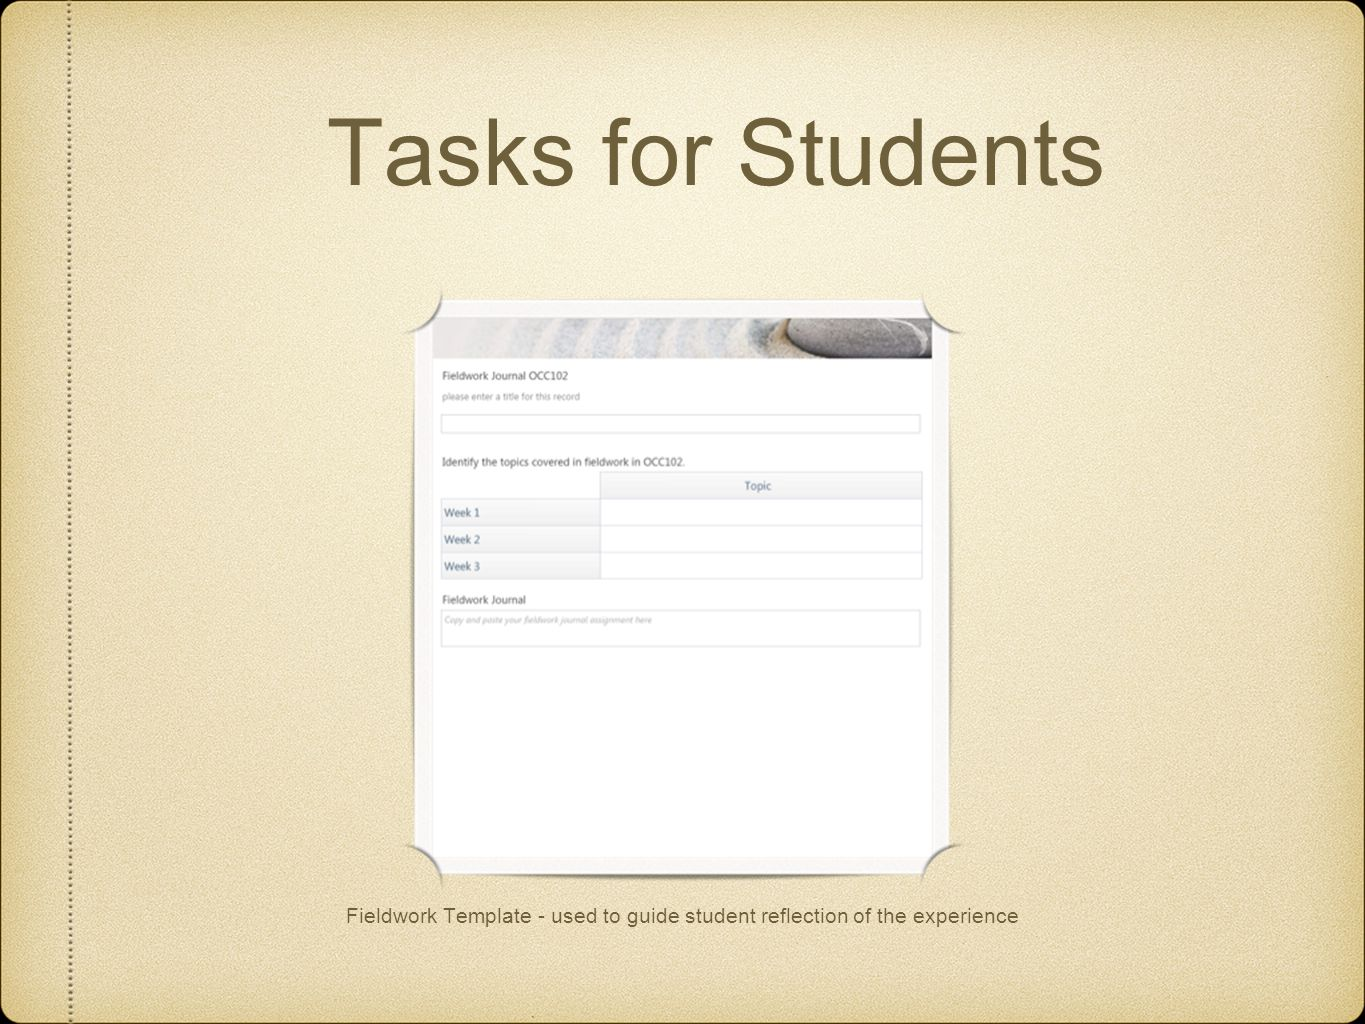 Tasks for Students Fieldwork Template - used to guide student reflection of the experience